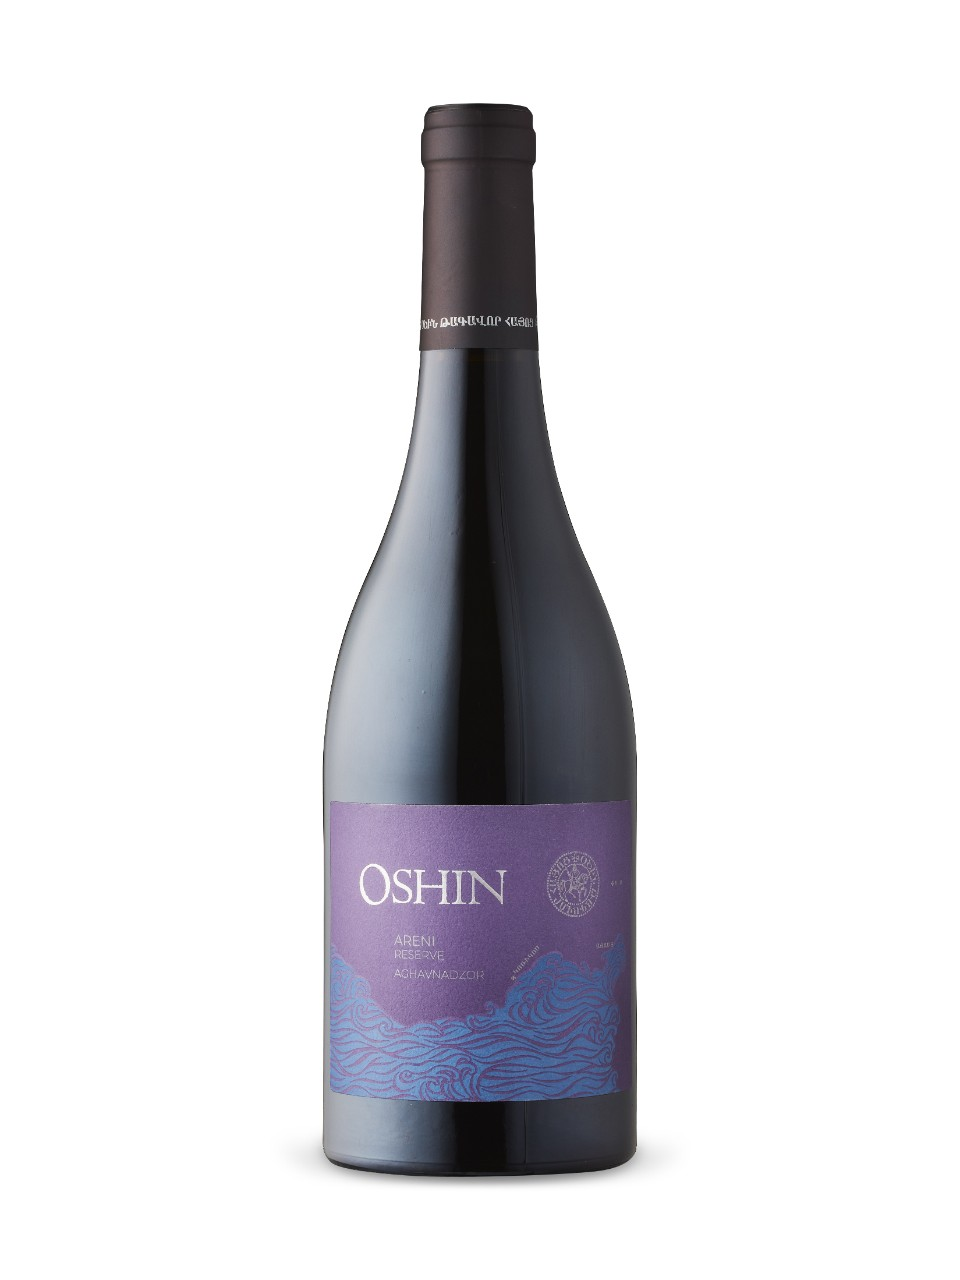 Oshin Areni Reserve 2017 from LCBO